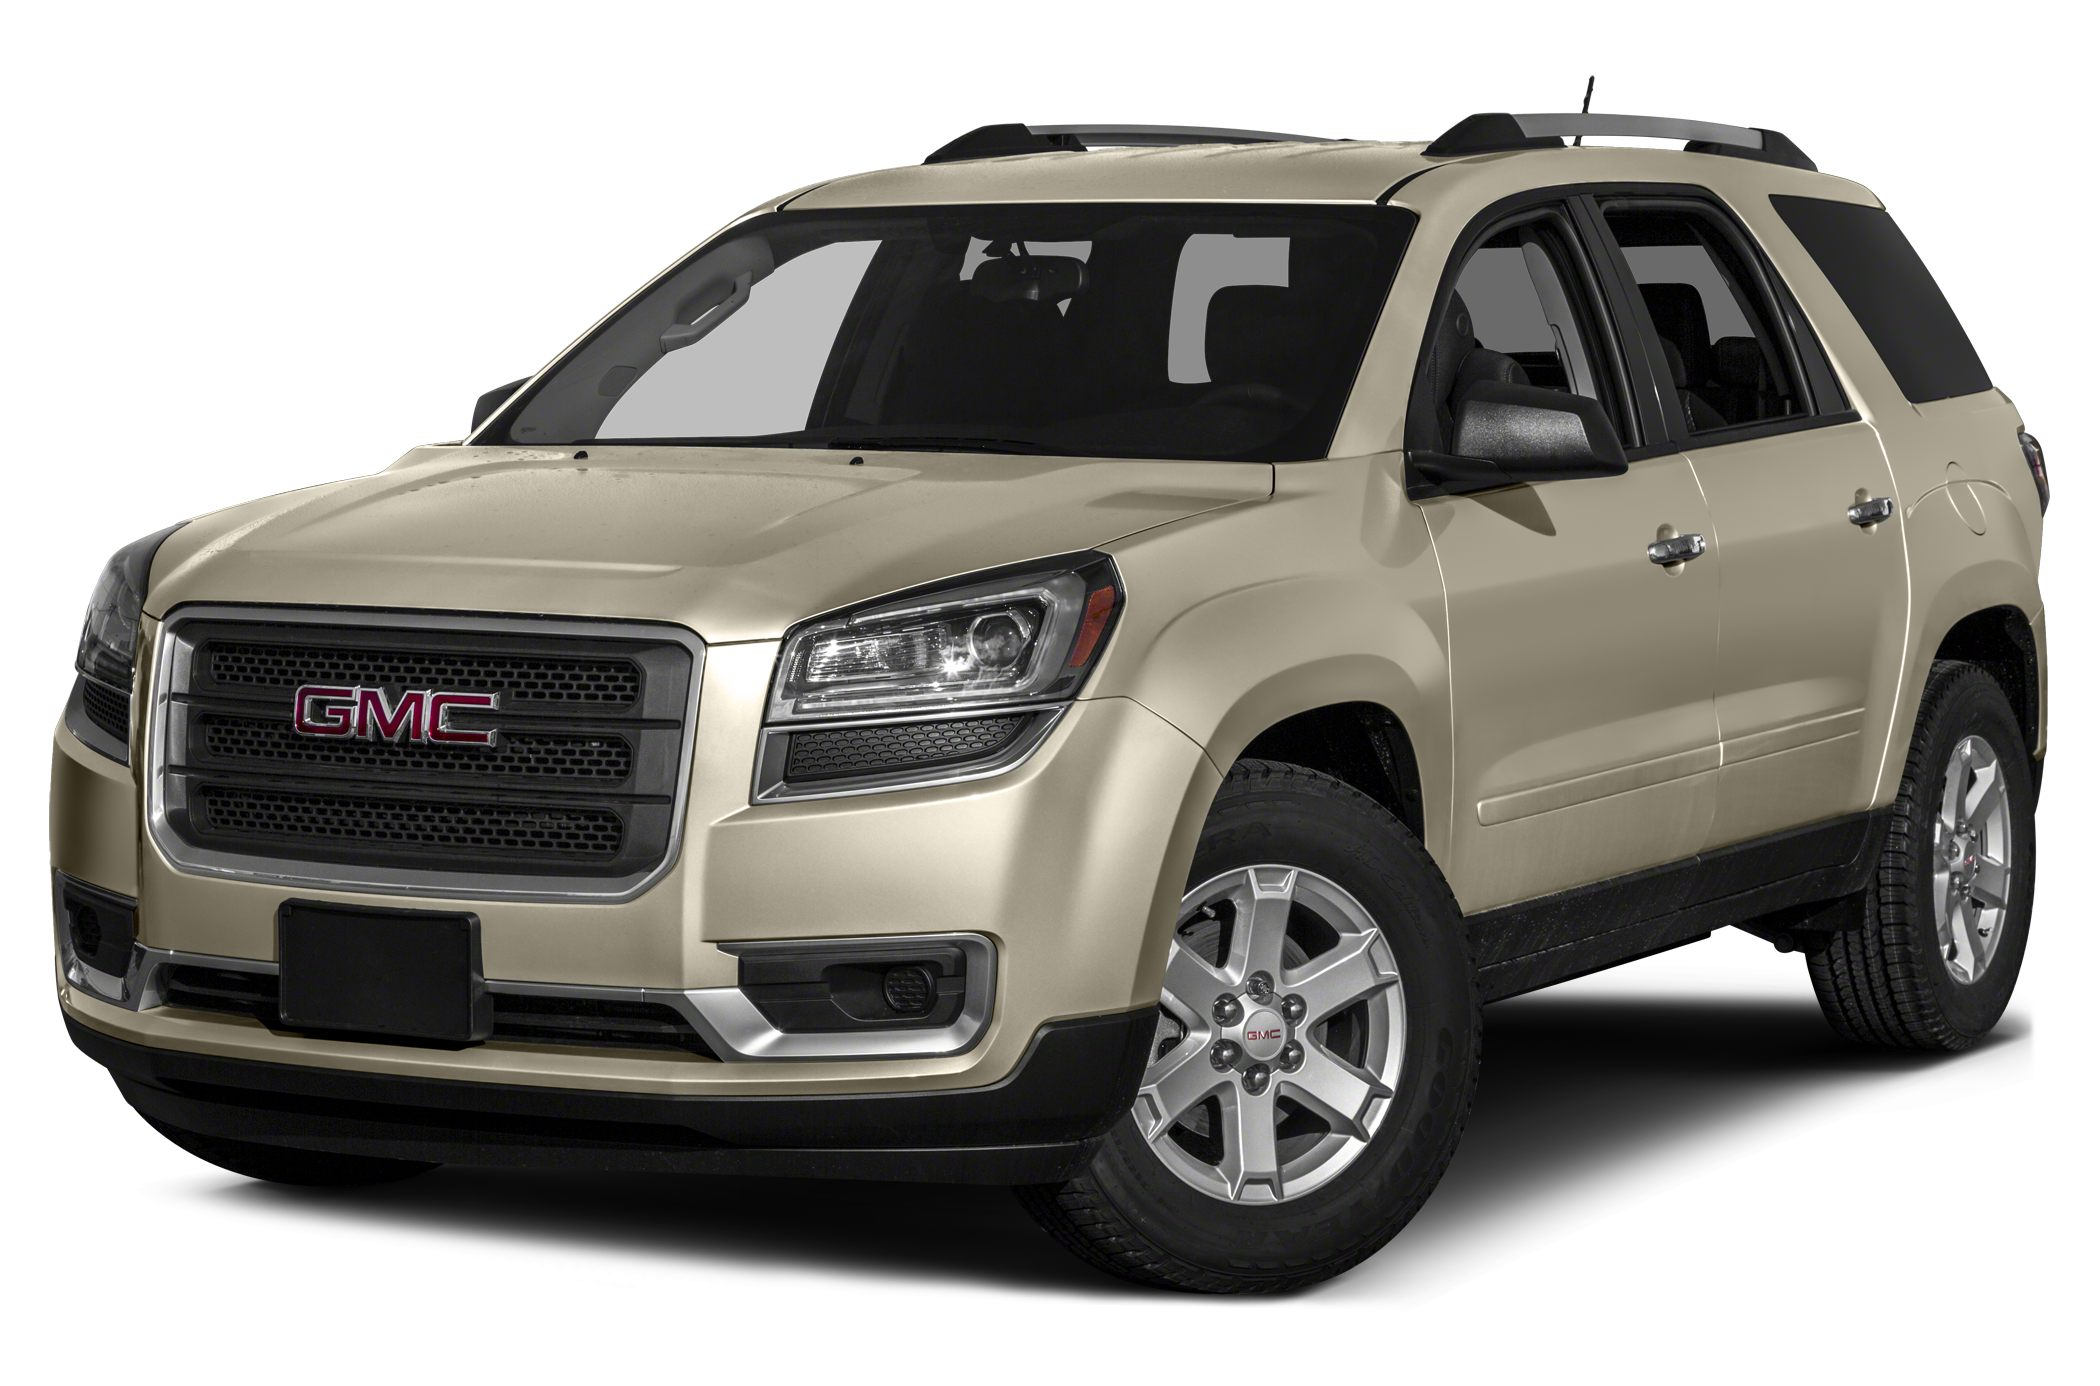 2013 GMC Acadia SLE-1 SUV for sale in Bedford for $23,900 with 50,652 miles.